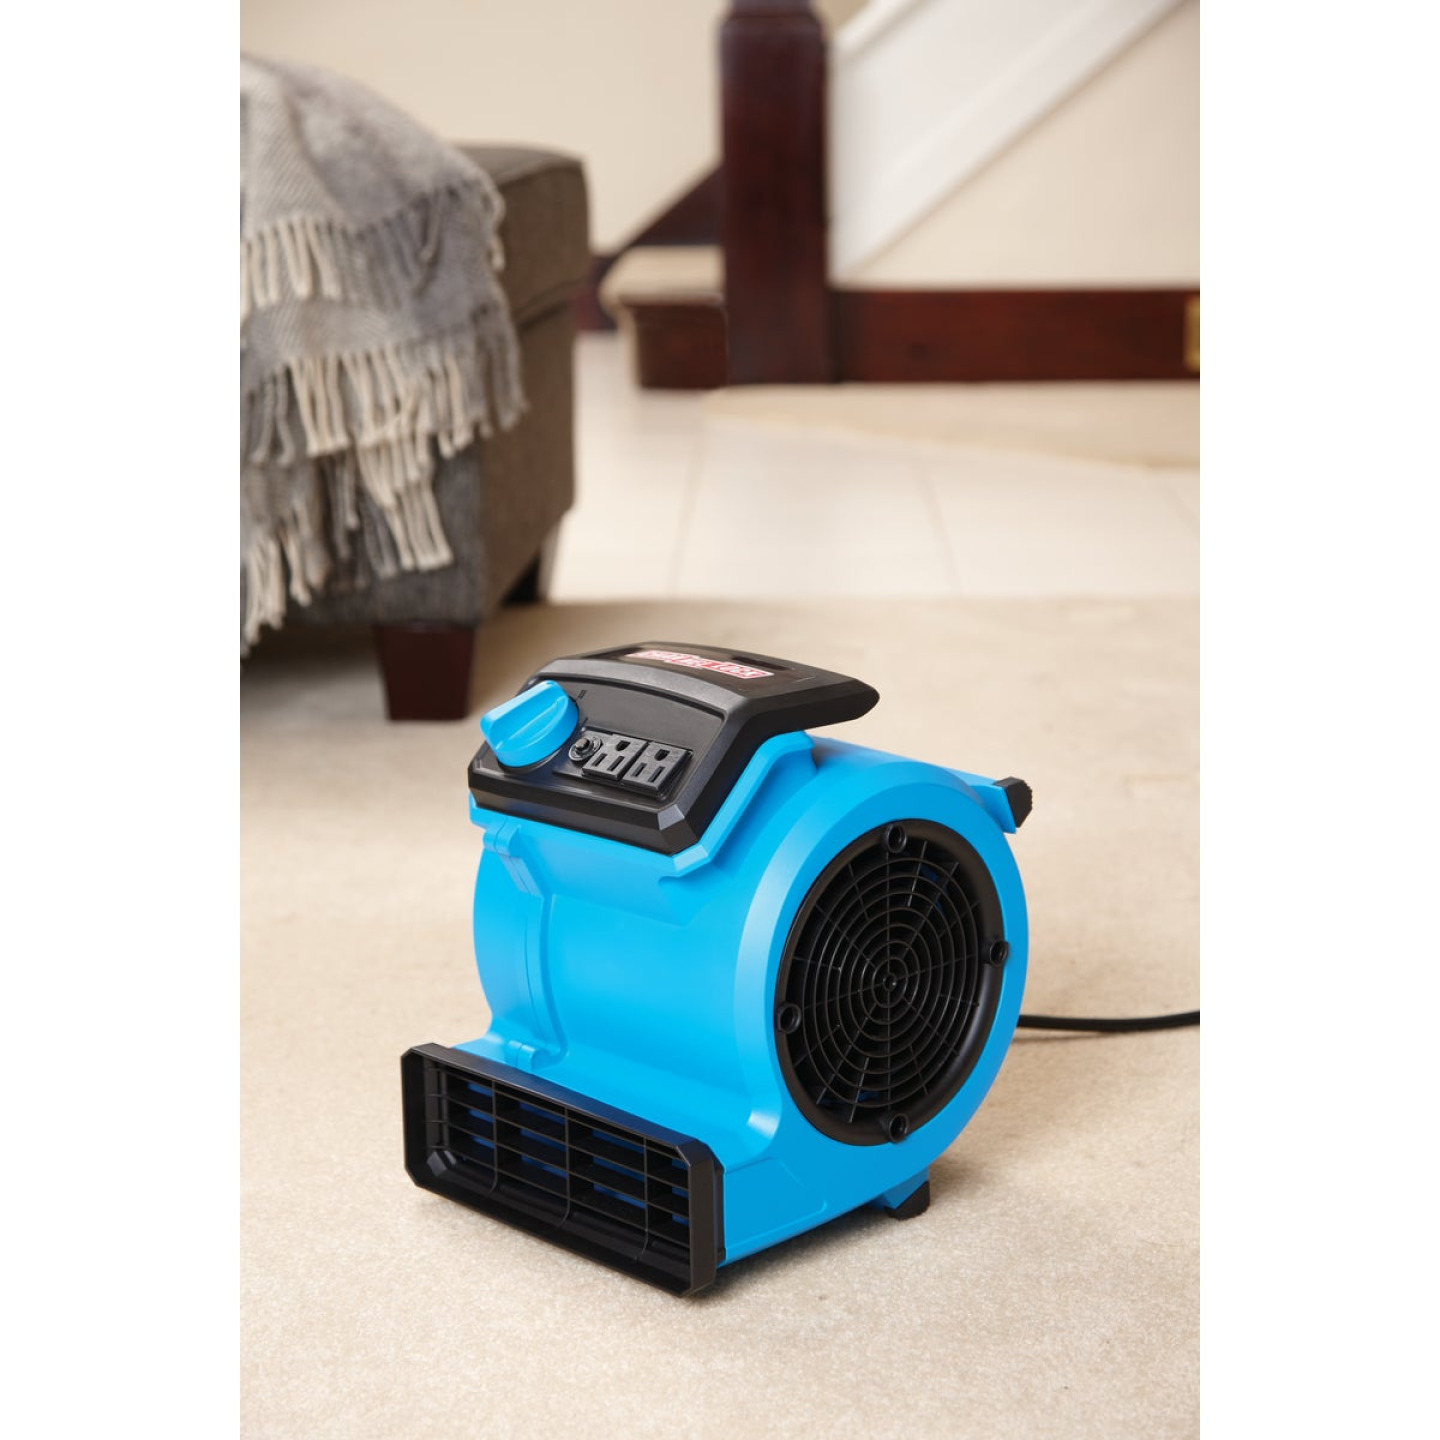 Channellock 3-Speed 3-Position 550 CFM Air Mover Blower Fan Image 3